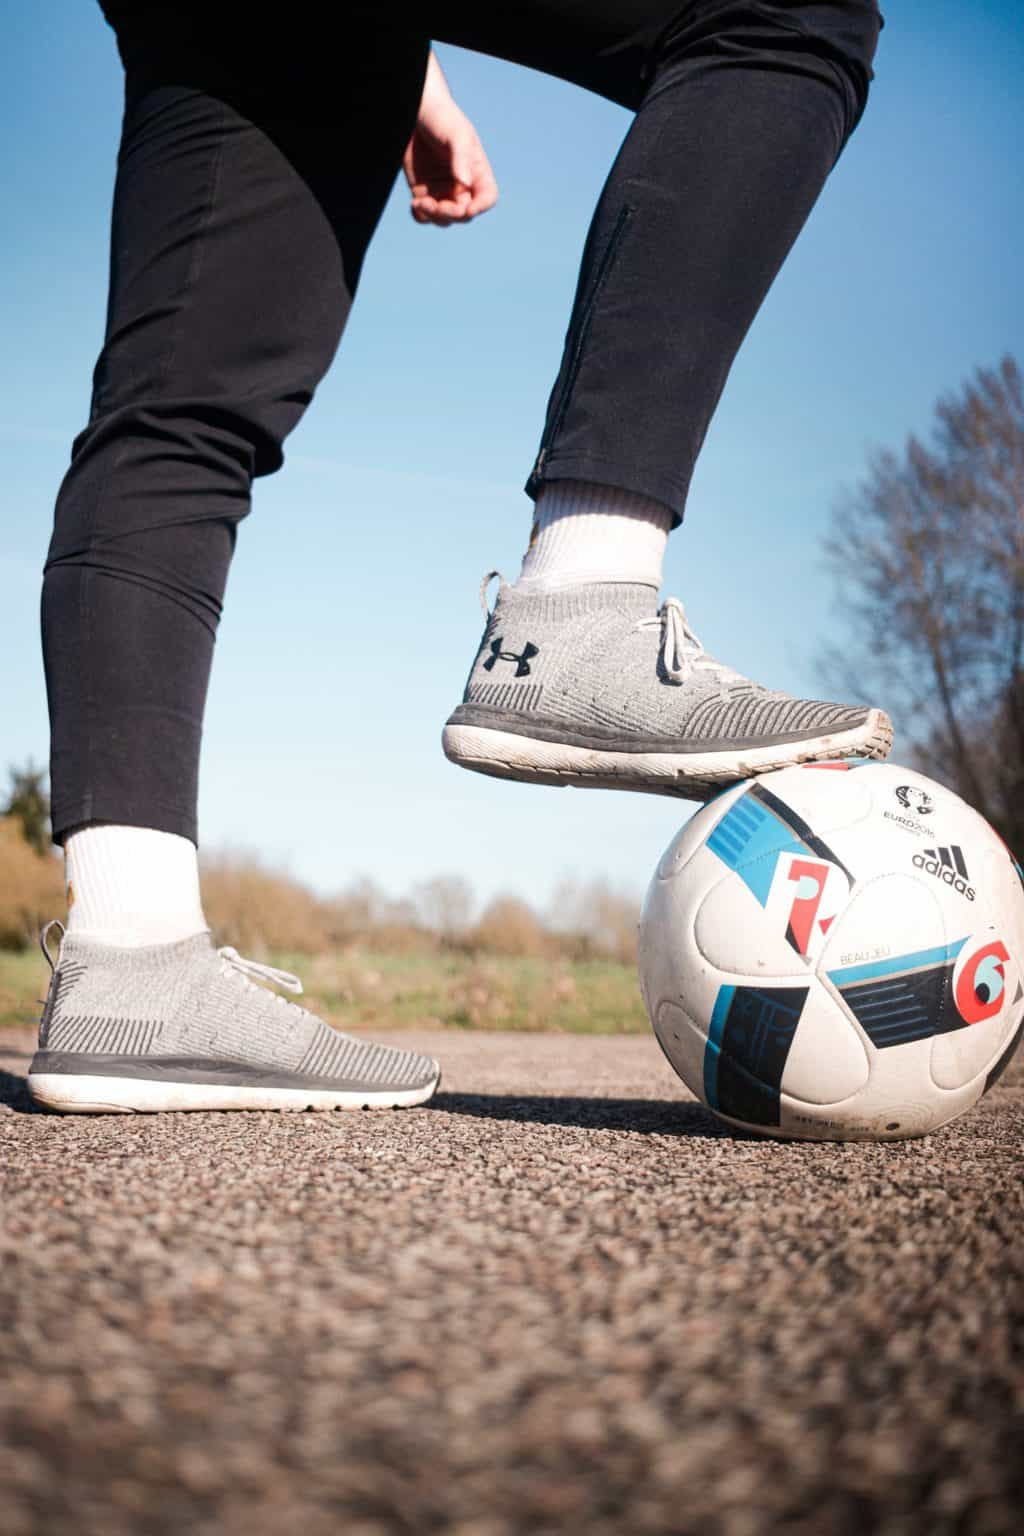 A person stepping on a soccer ball with one foot